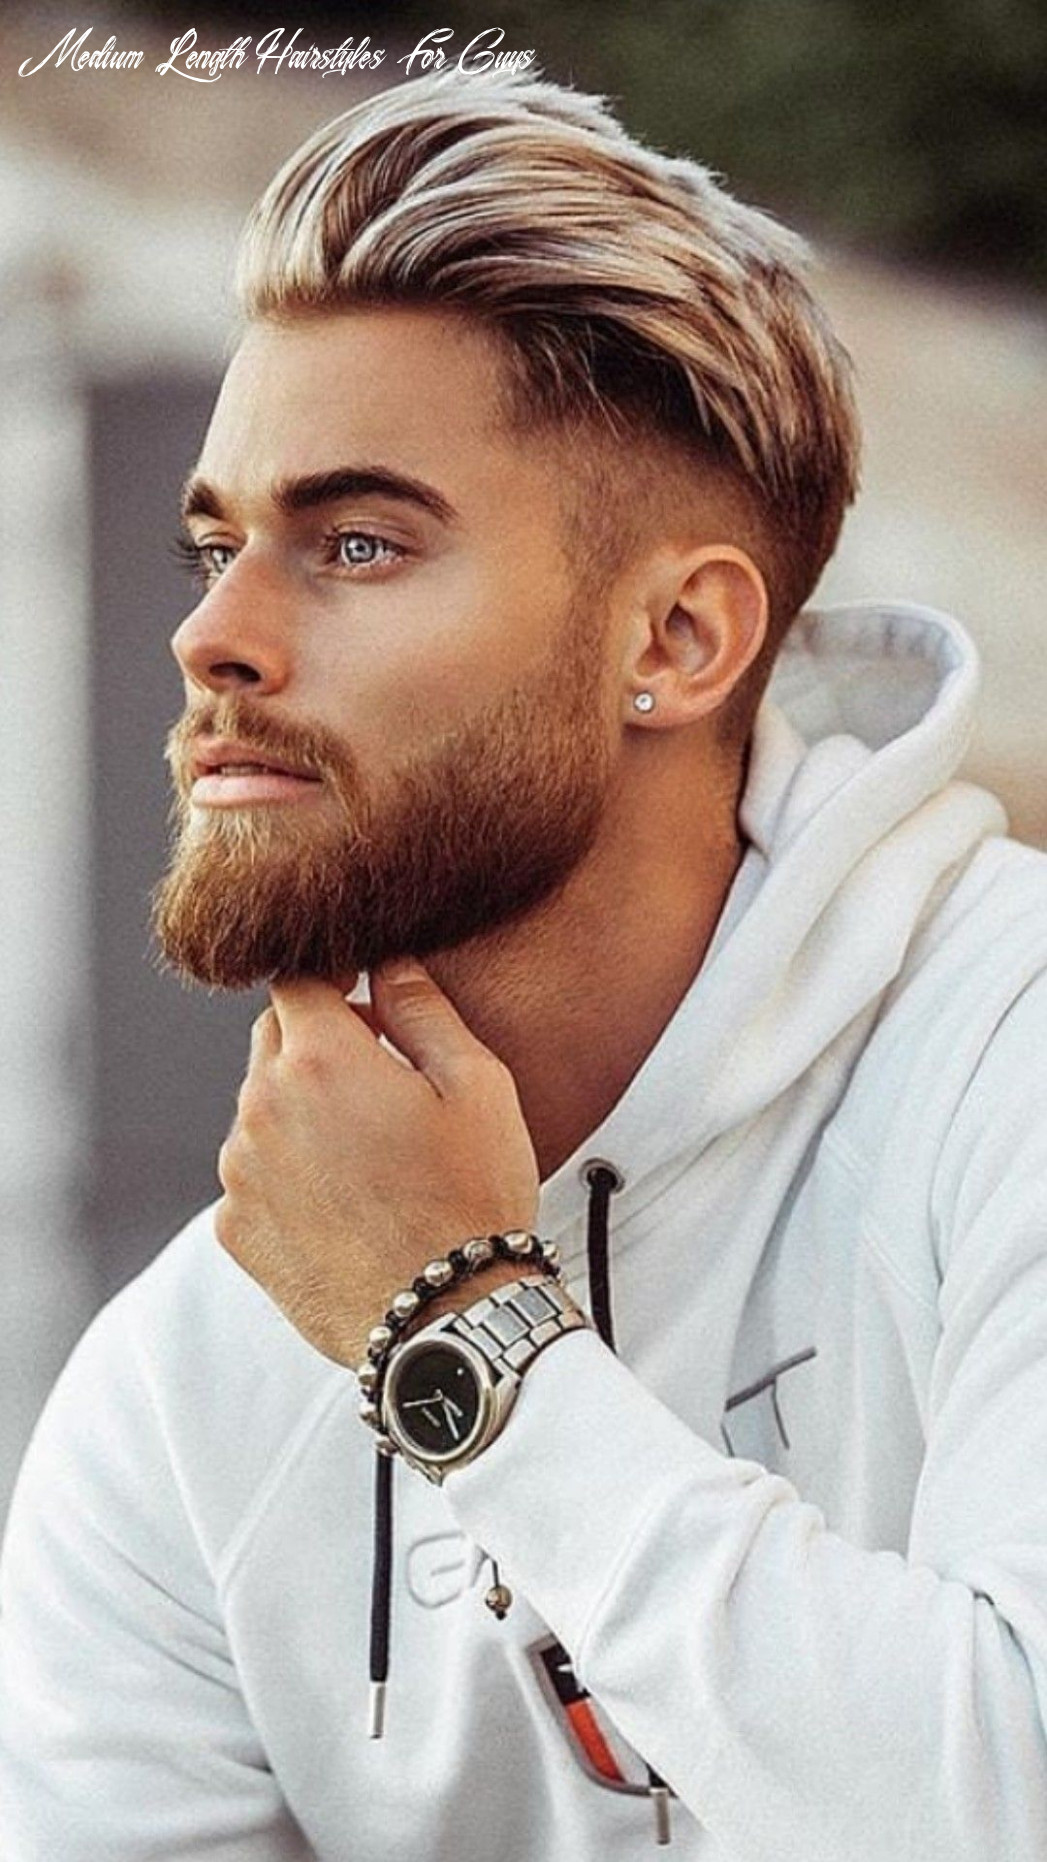 12 best medium length hairstyles men you must try in 1218 gallery